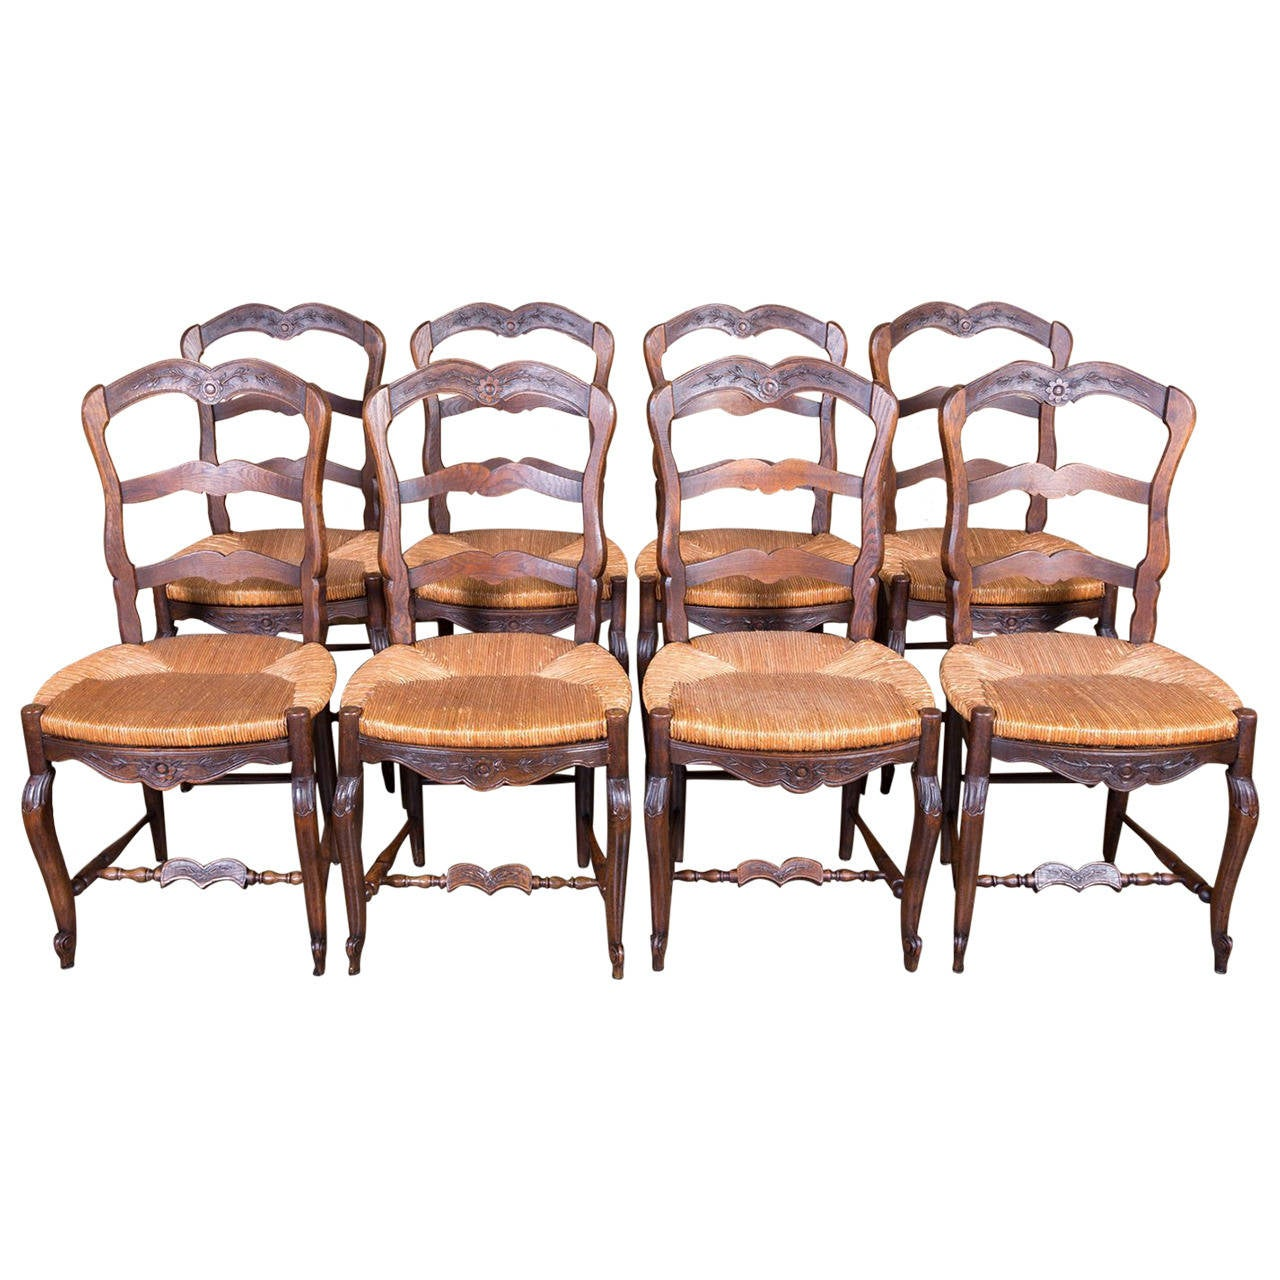 ladder back dining chairs french country swing chair for baby set of eight antique provencal rush seat